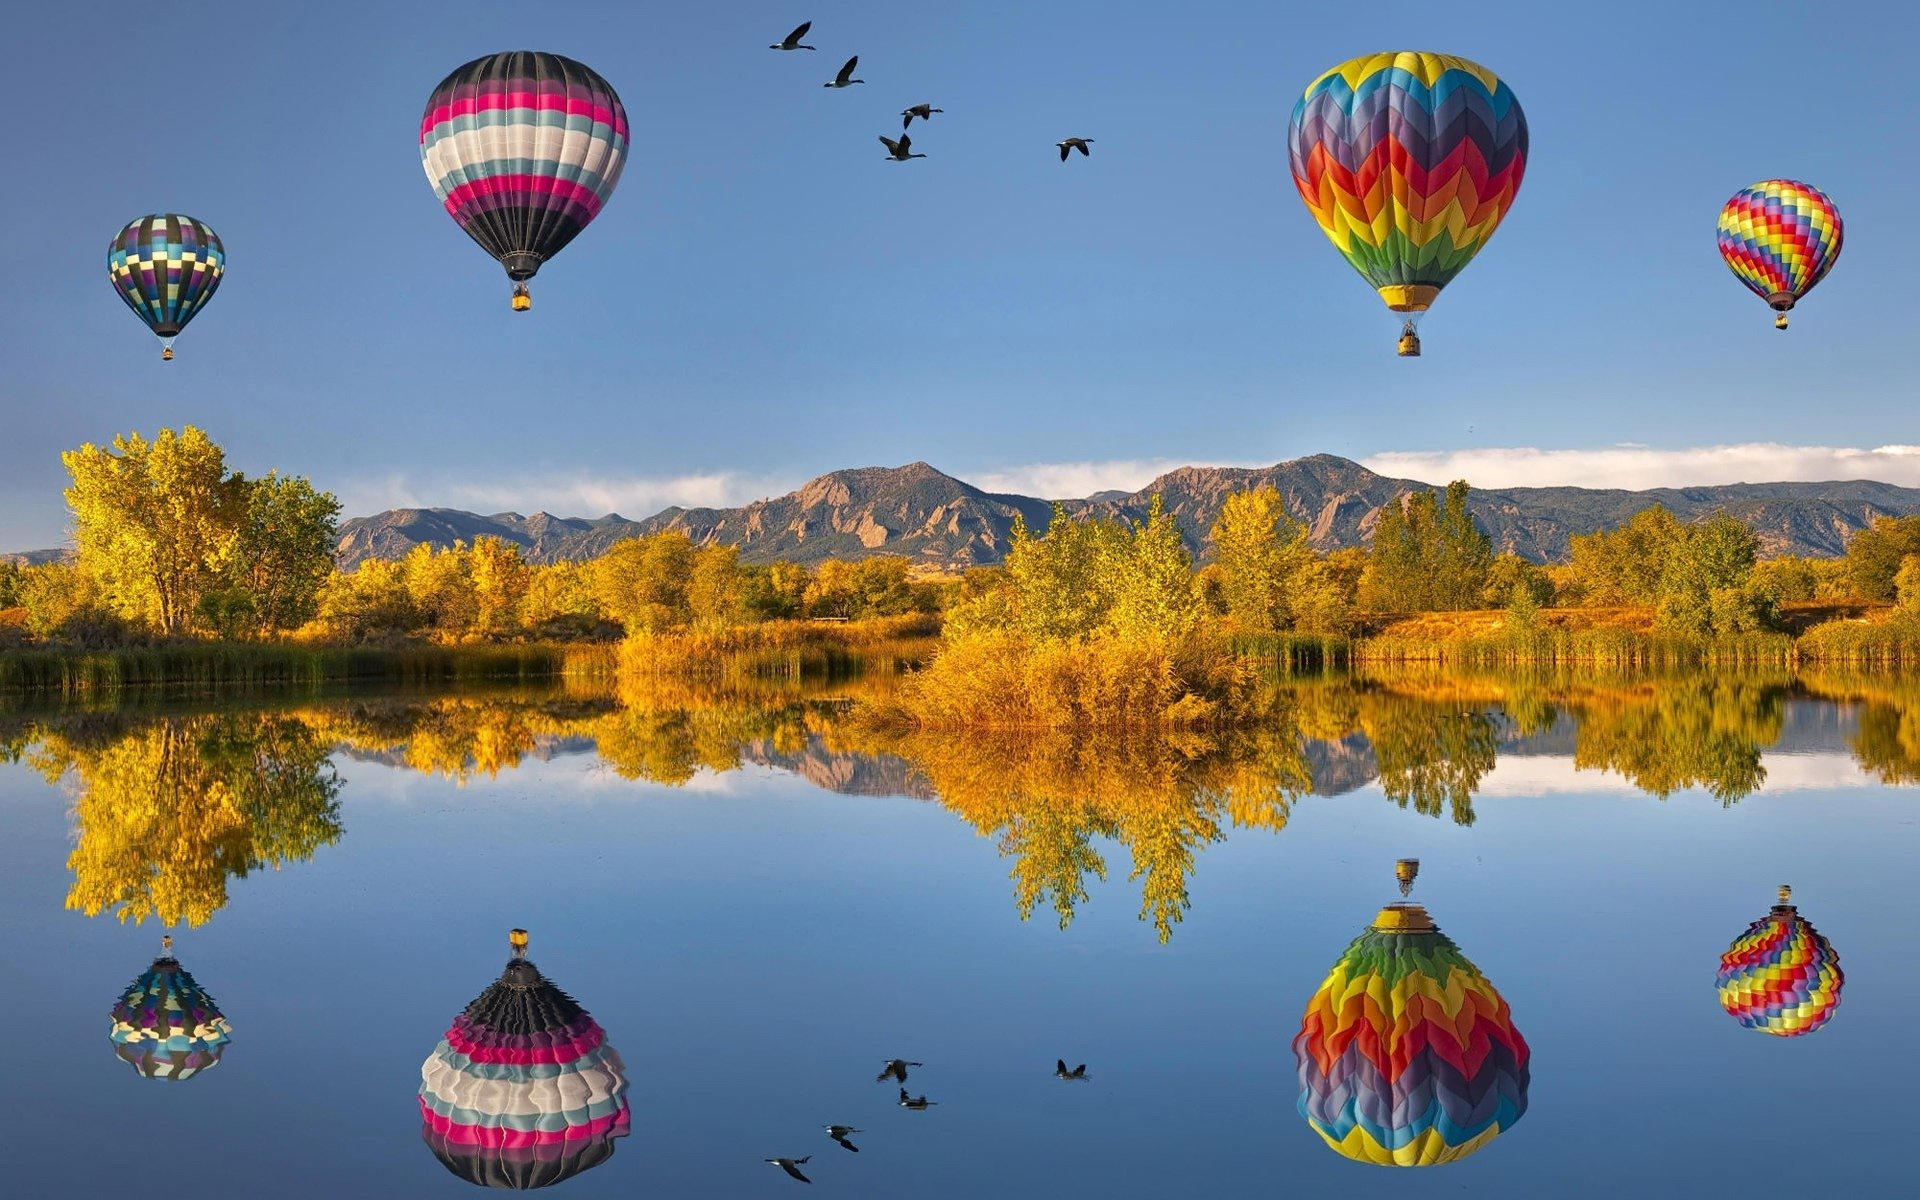 HD Hot Air Balloon Wallpapers and Photos HD Photography Wallpapers 1920x1200